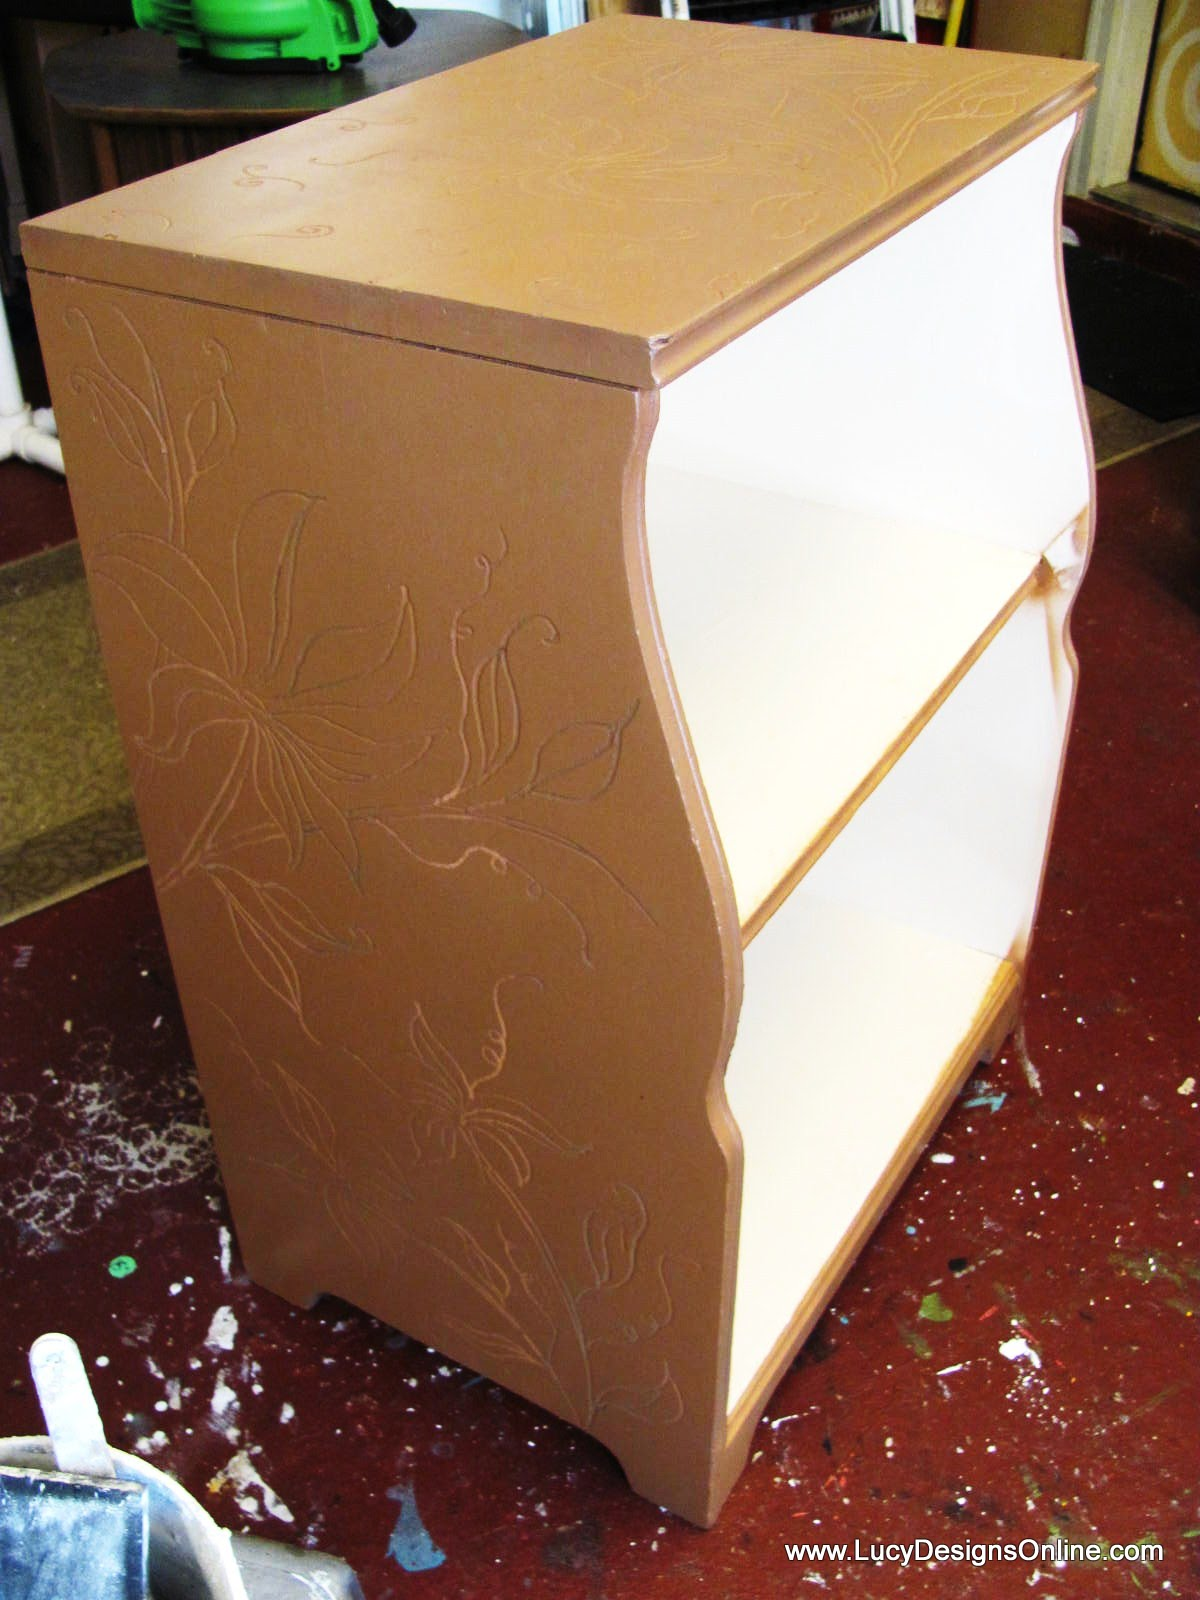 Dremel carving on nightstand table furniture with flowers and vine